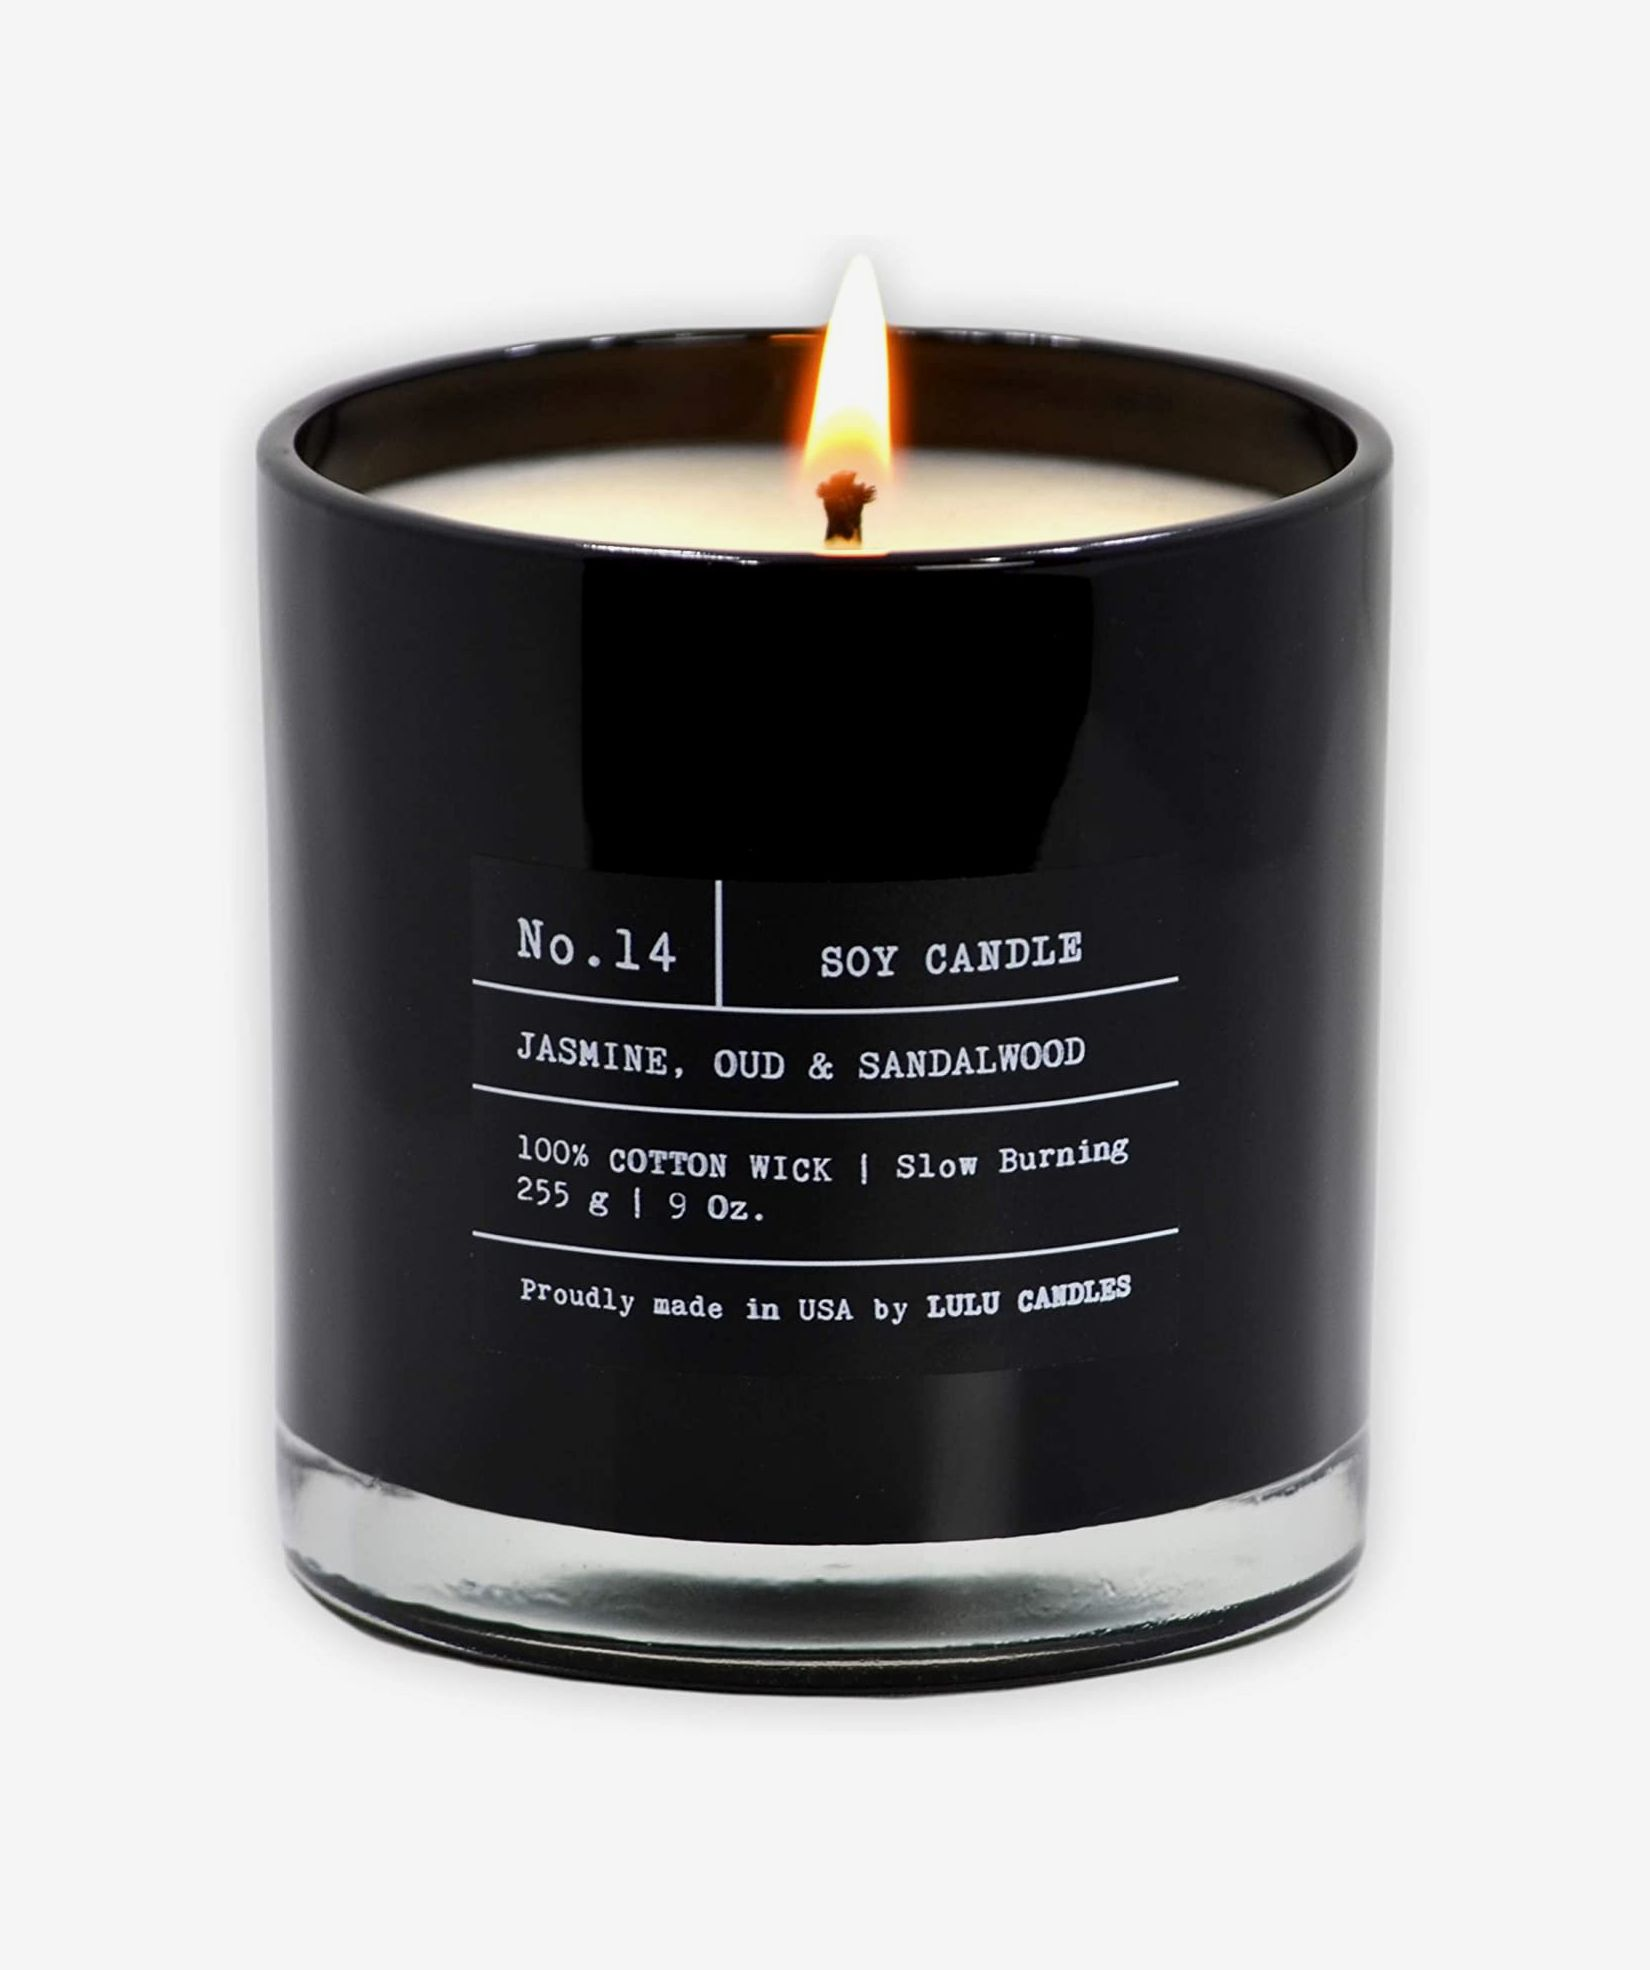 High Quality Man Cave Decor Highly Scented Man Scented Candle Popular Candles Scented Soy Candle Type Black Ice Long Burning Candle